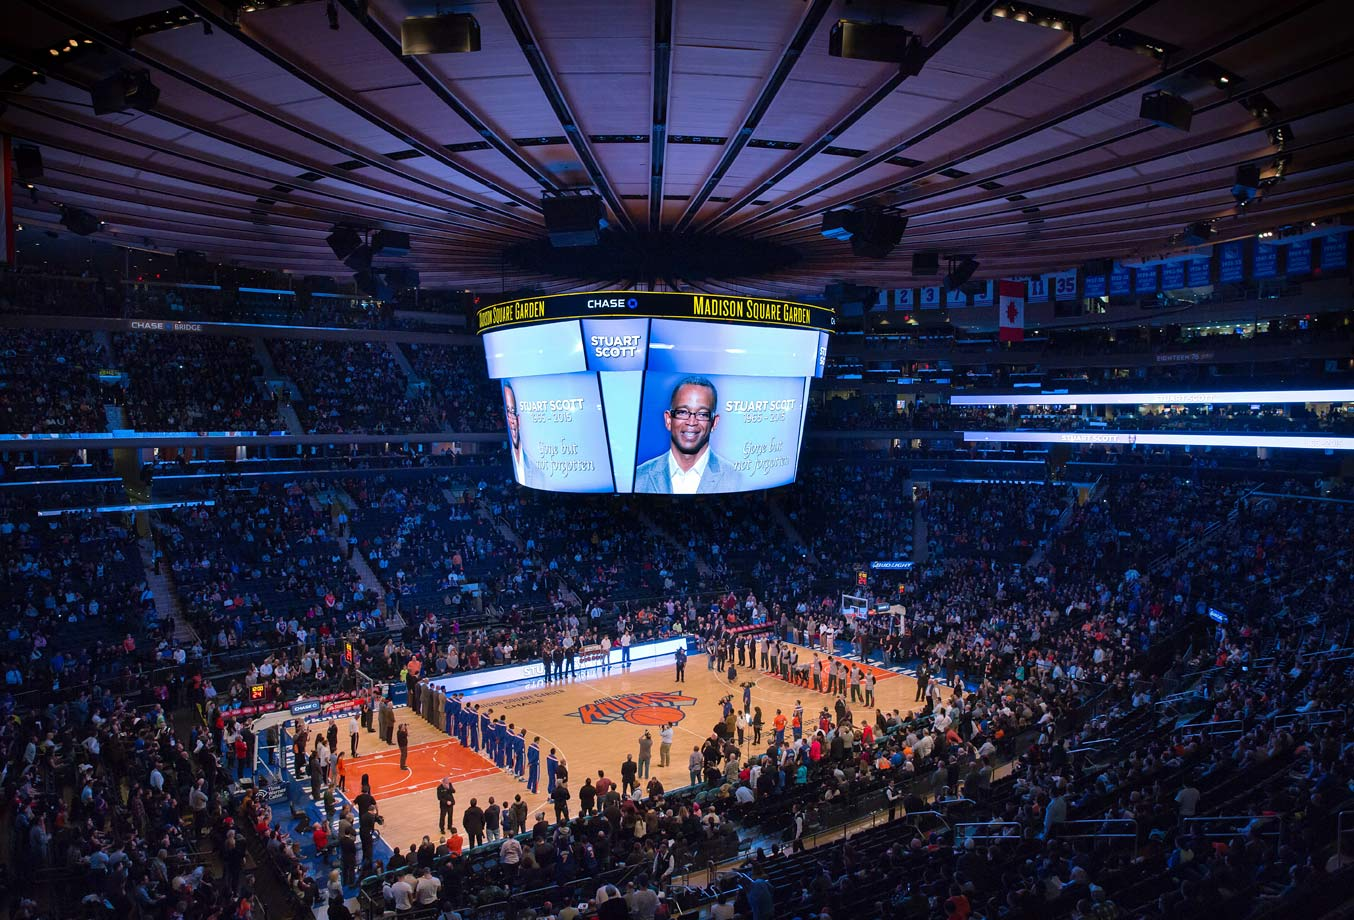 Stuart Scott is honored before the New York Knicks game against the Milwaukee Bucks at Madison Square Garden on Jan. 4, 2015 in New York City.